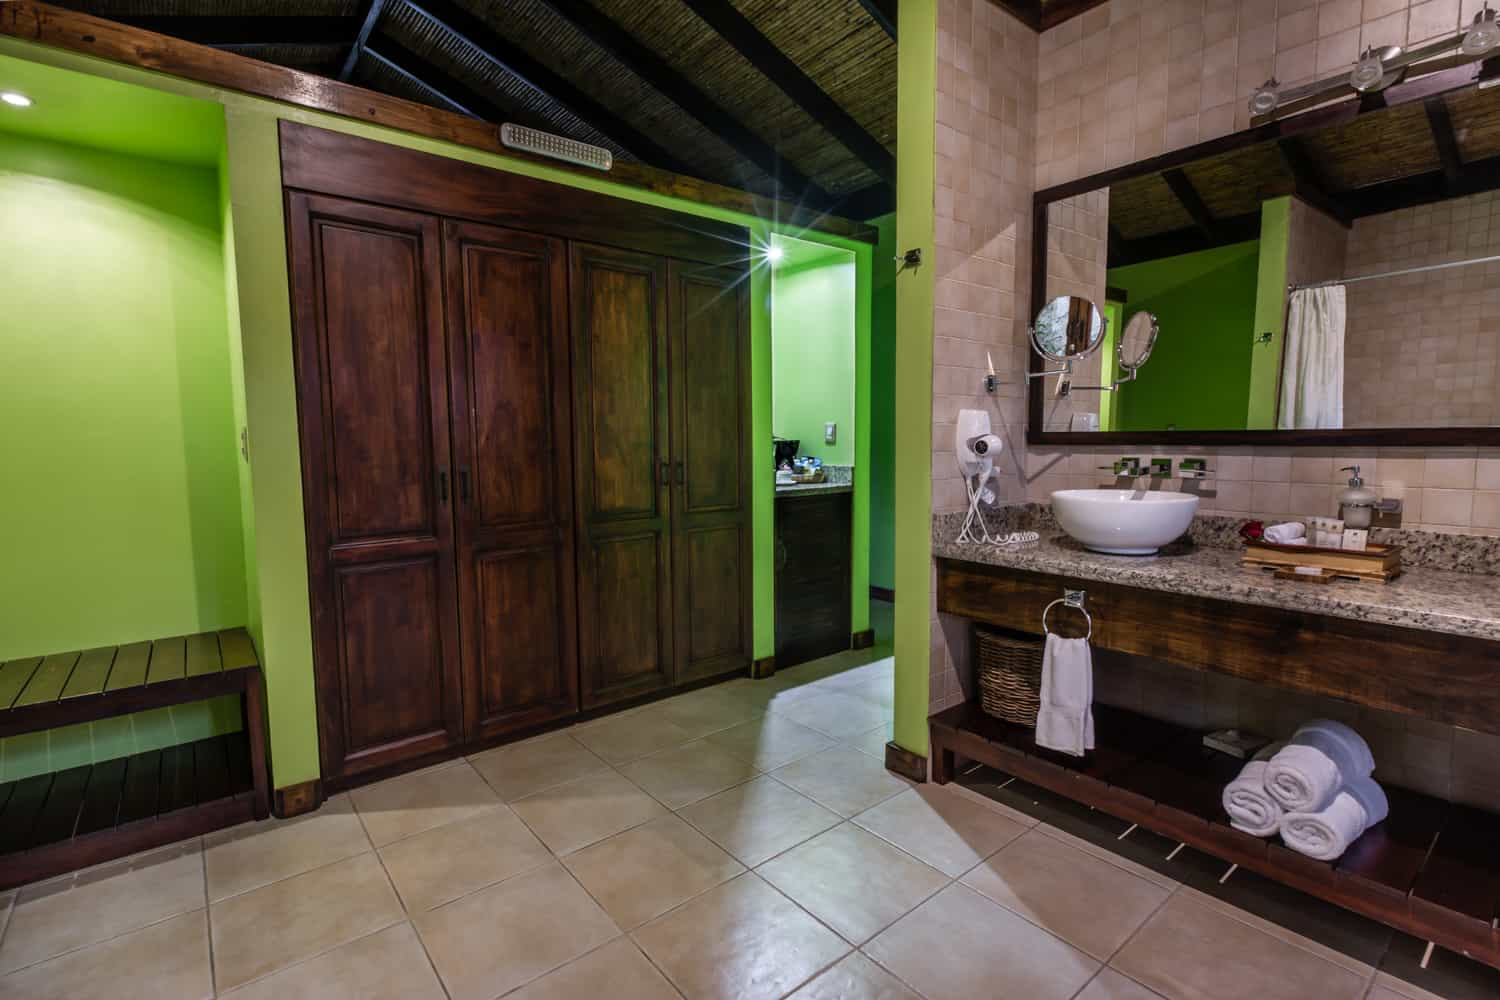 Spacious bathroom with luxury amenities at Rio Celeste Hideaway Hotel.